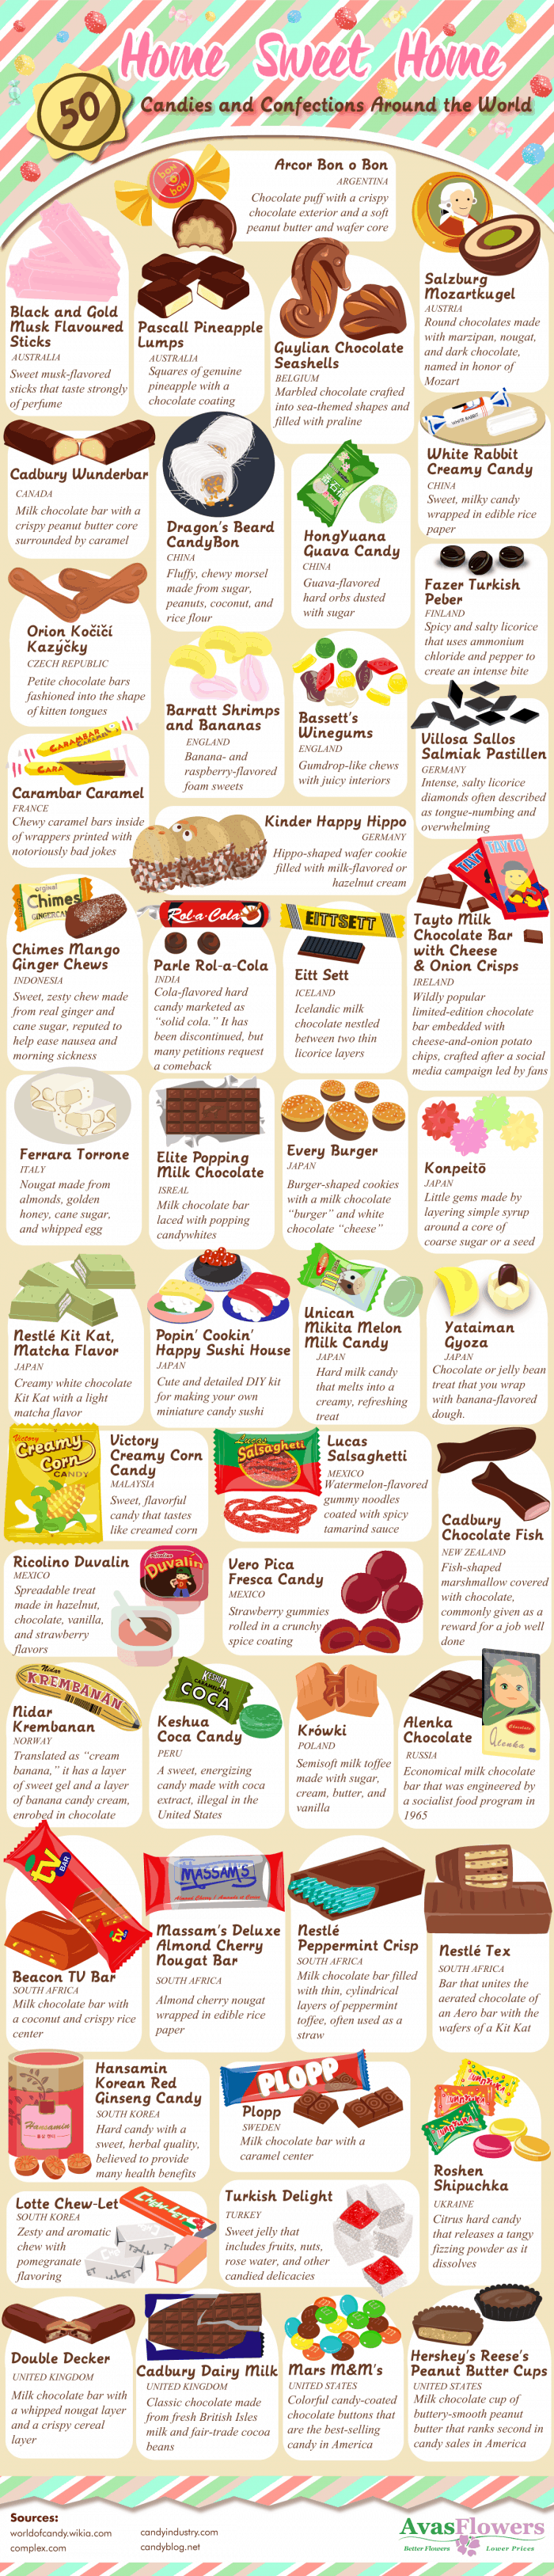 Different kinds of candy from places in the world